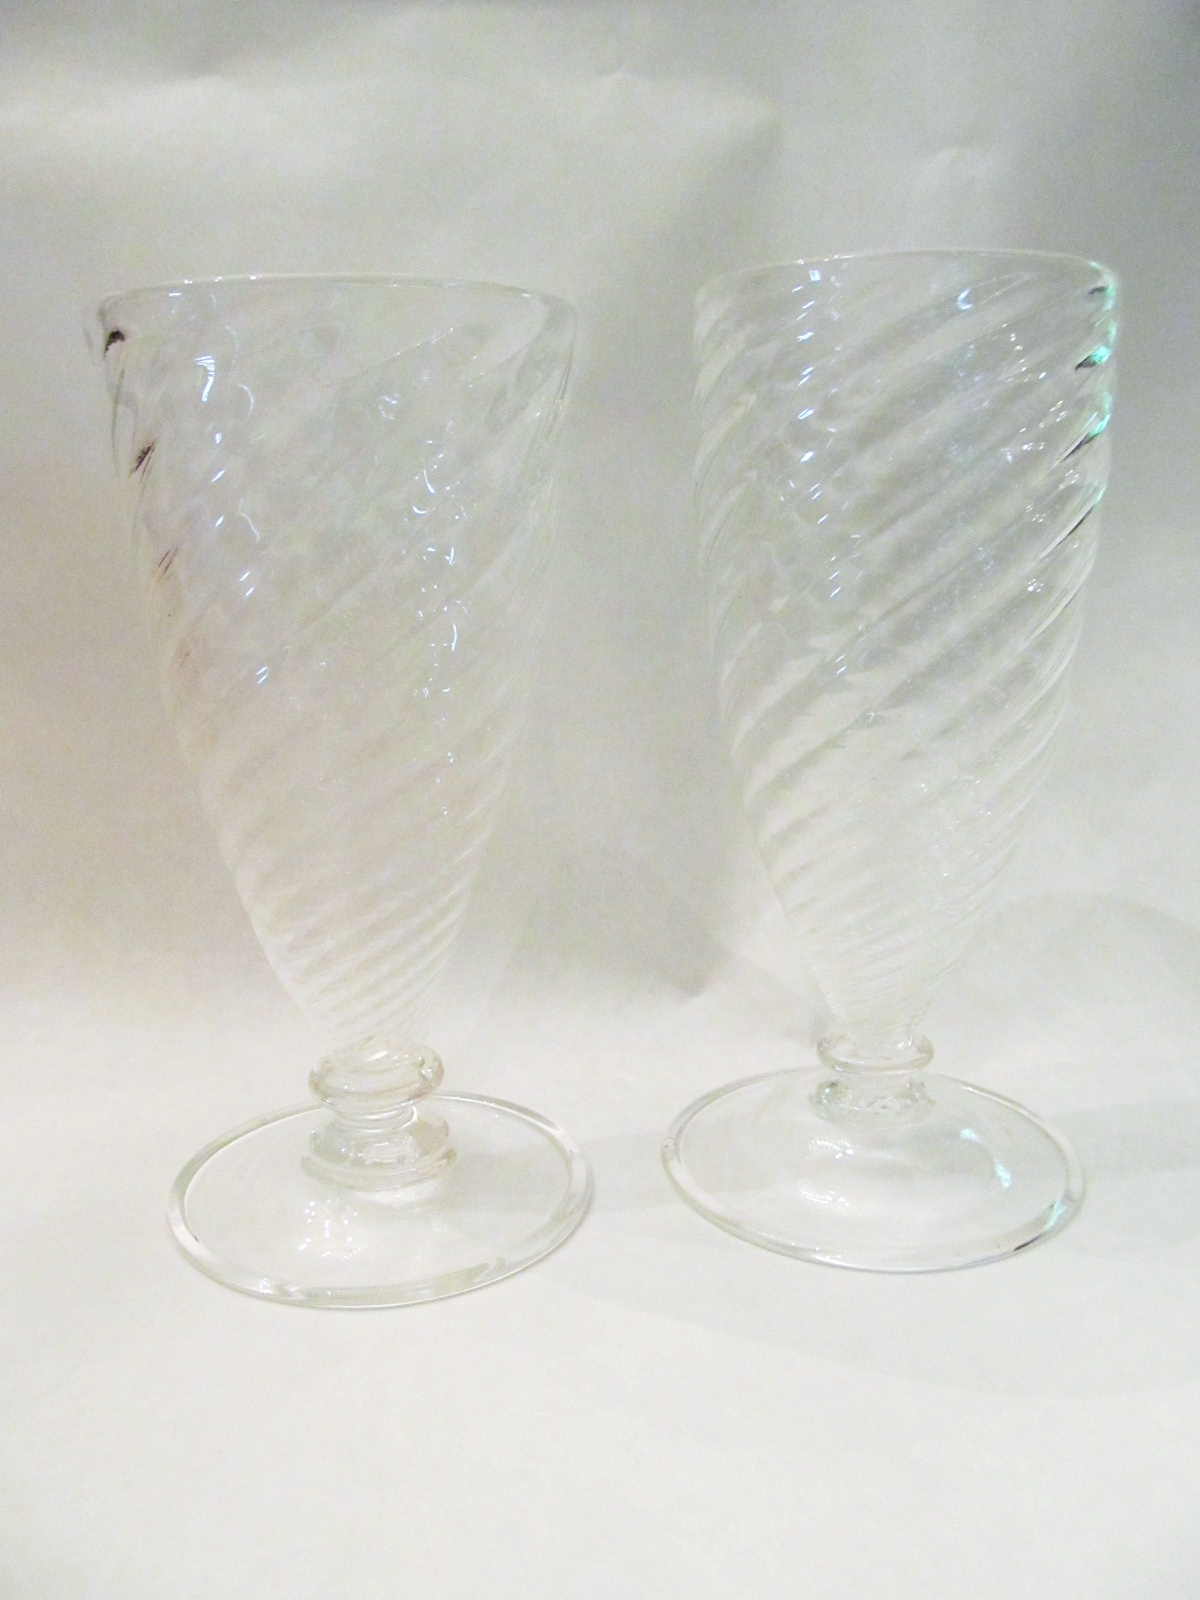 IMG_1425 two glasses.jpg